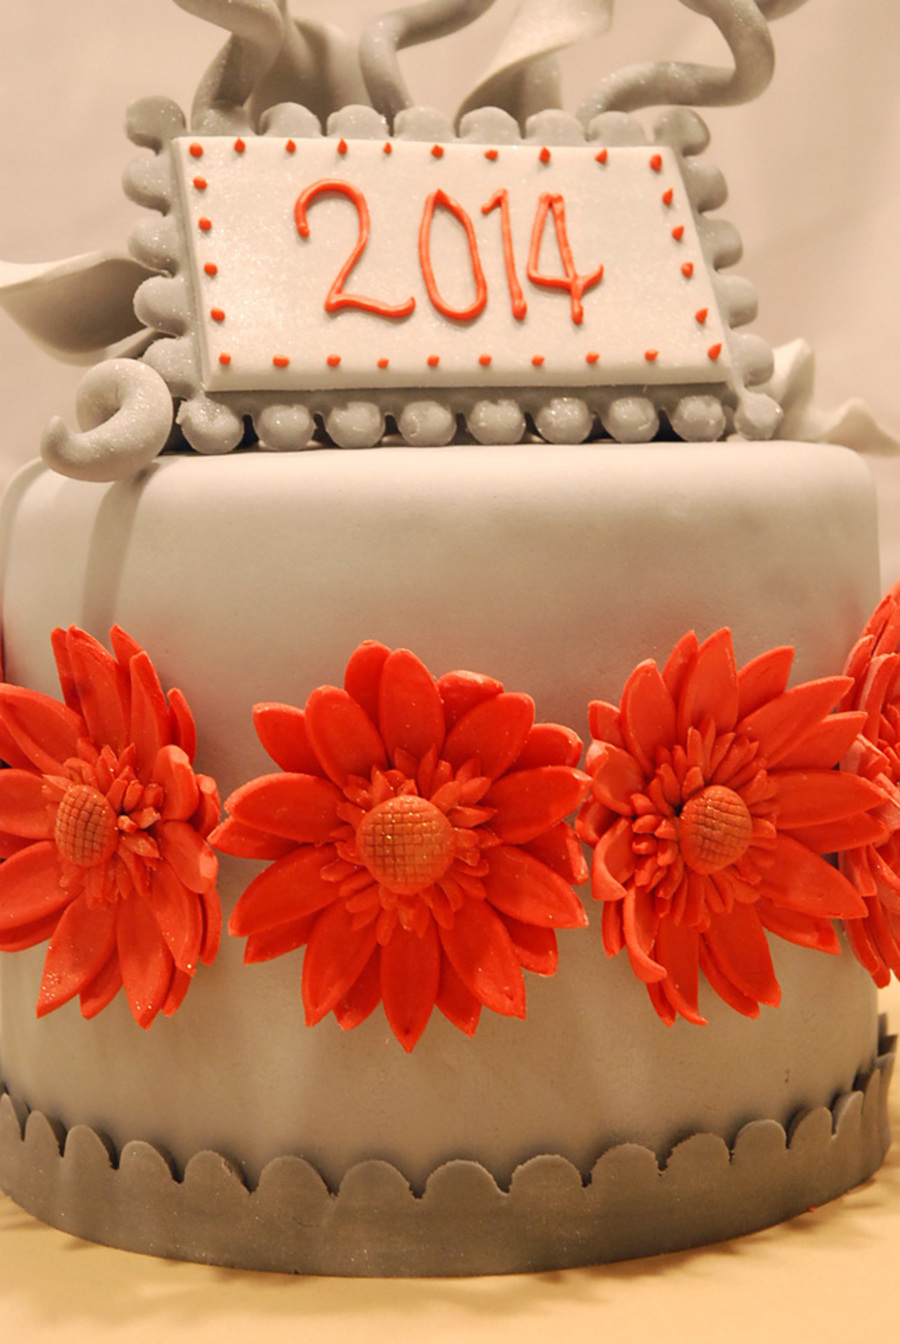 New Year Cake I Wanted To Create A Colorful But Elegant Design Its A